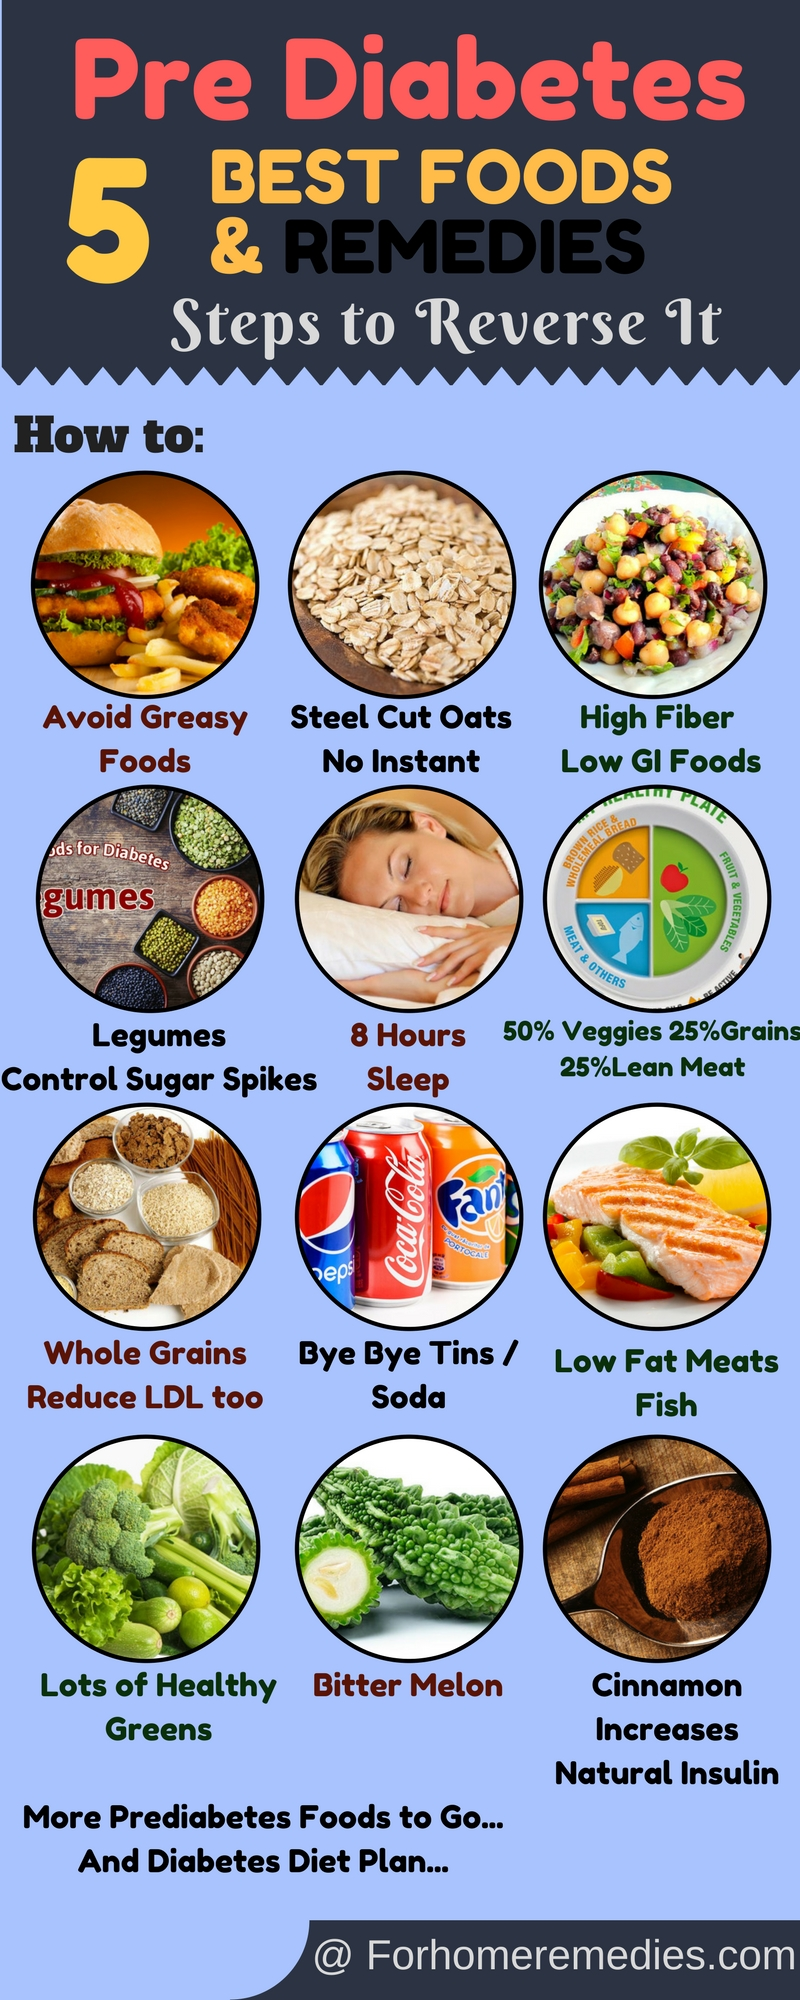 What Foods Should A Diabetic Eat And Not Eat